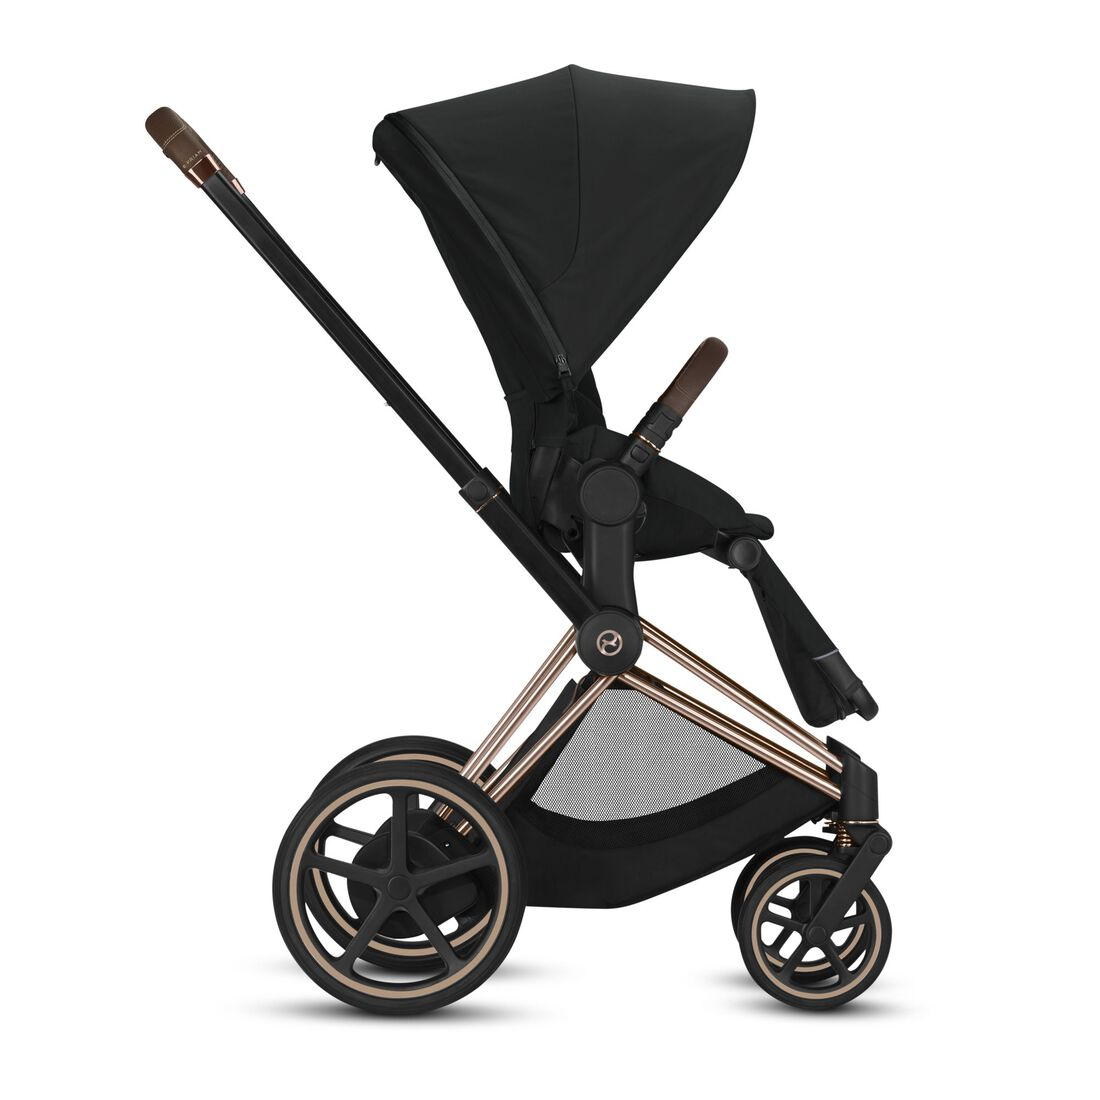 CYBEX Configure e-Priam Set: Frame, Lux Carry Cot, Cloud Z i-Size, Seat Pack in  large image number 4